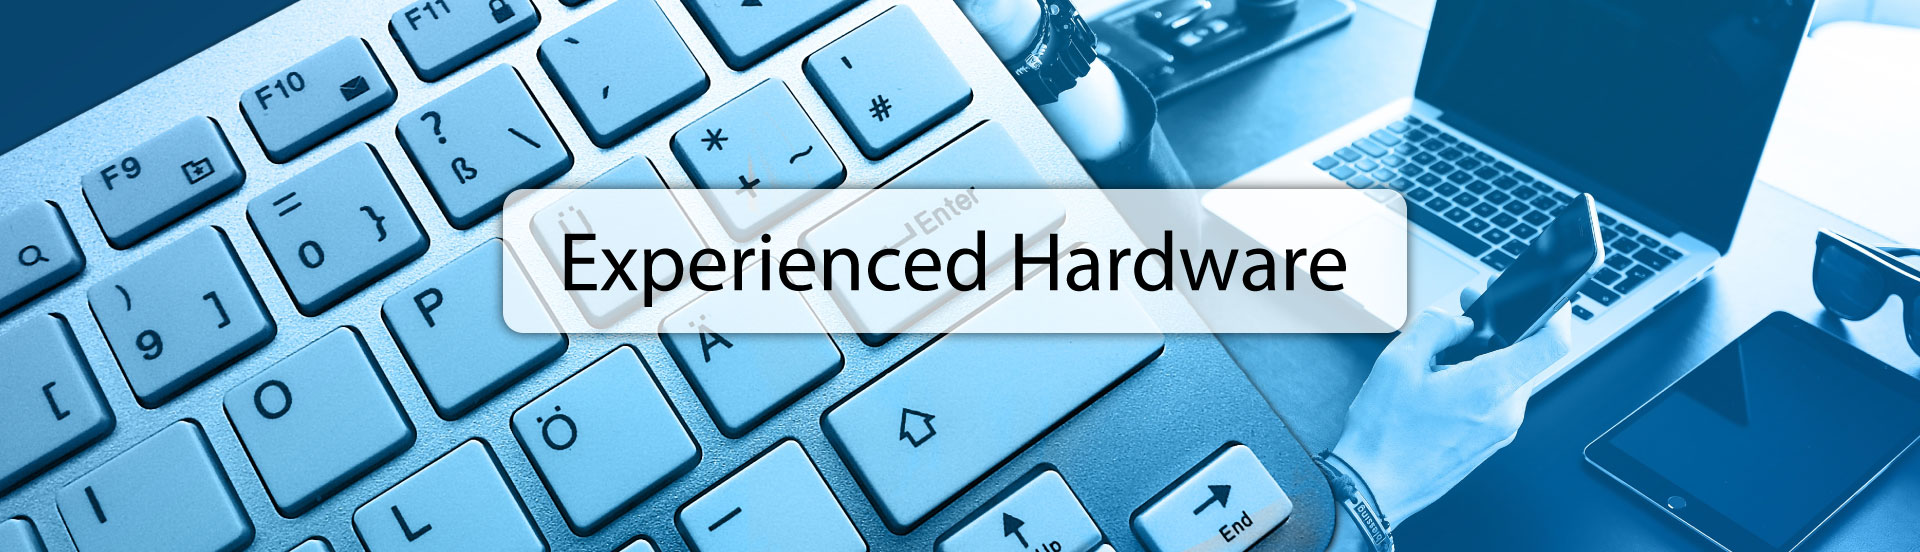 experienced hardware